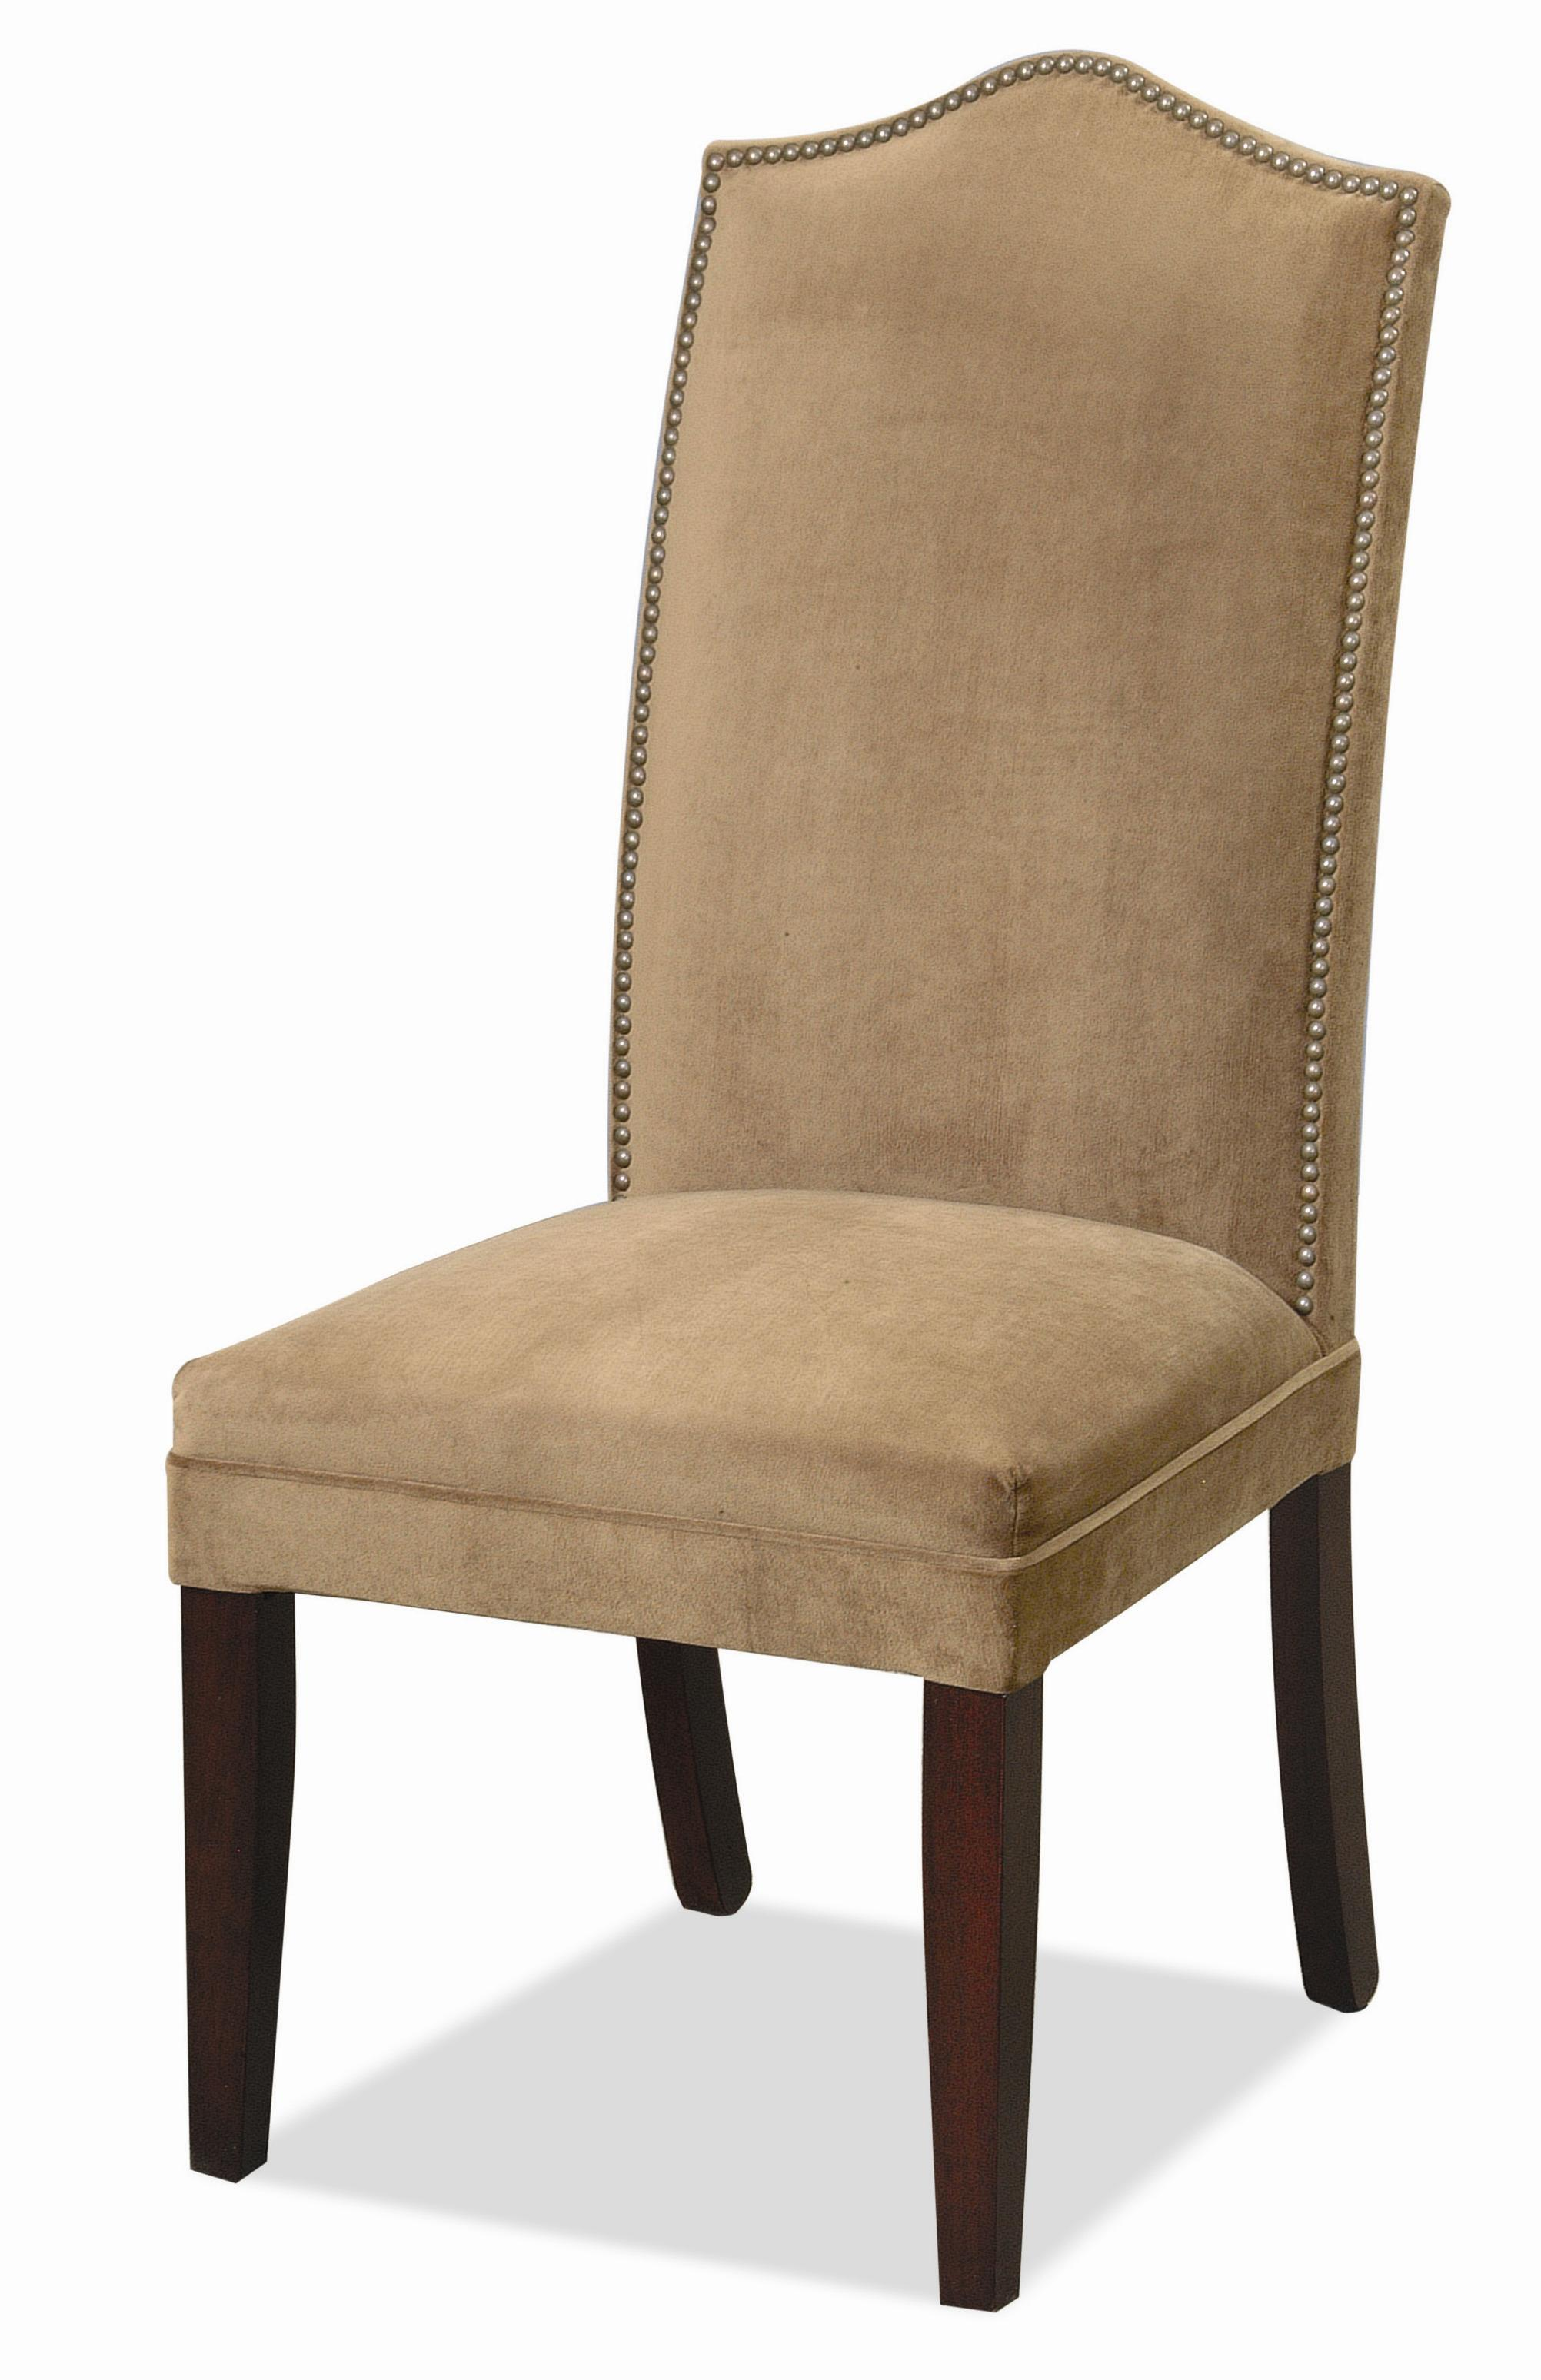 Parson Chairs Dining Side Chair by CMI at Darvin Furniture